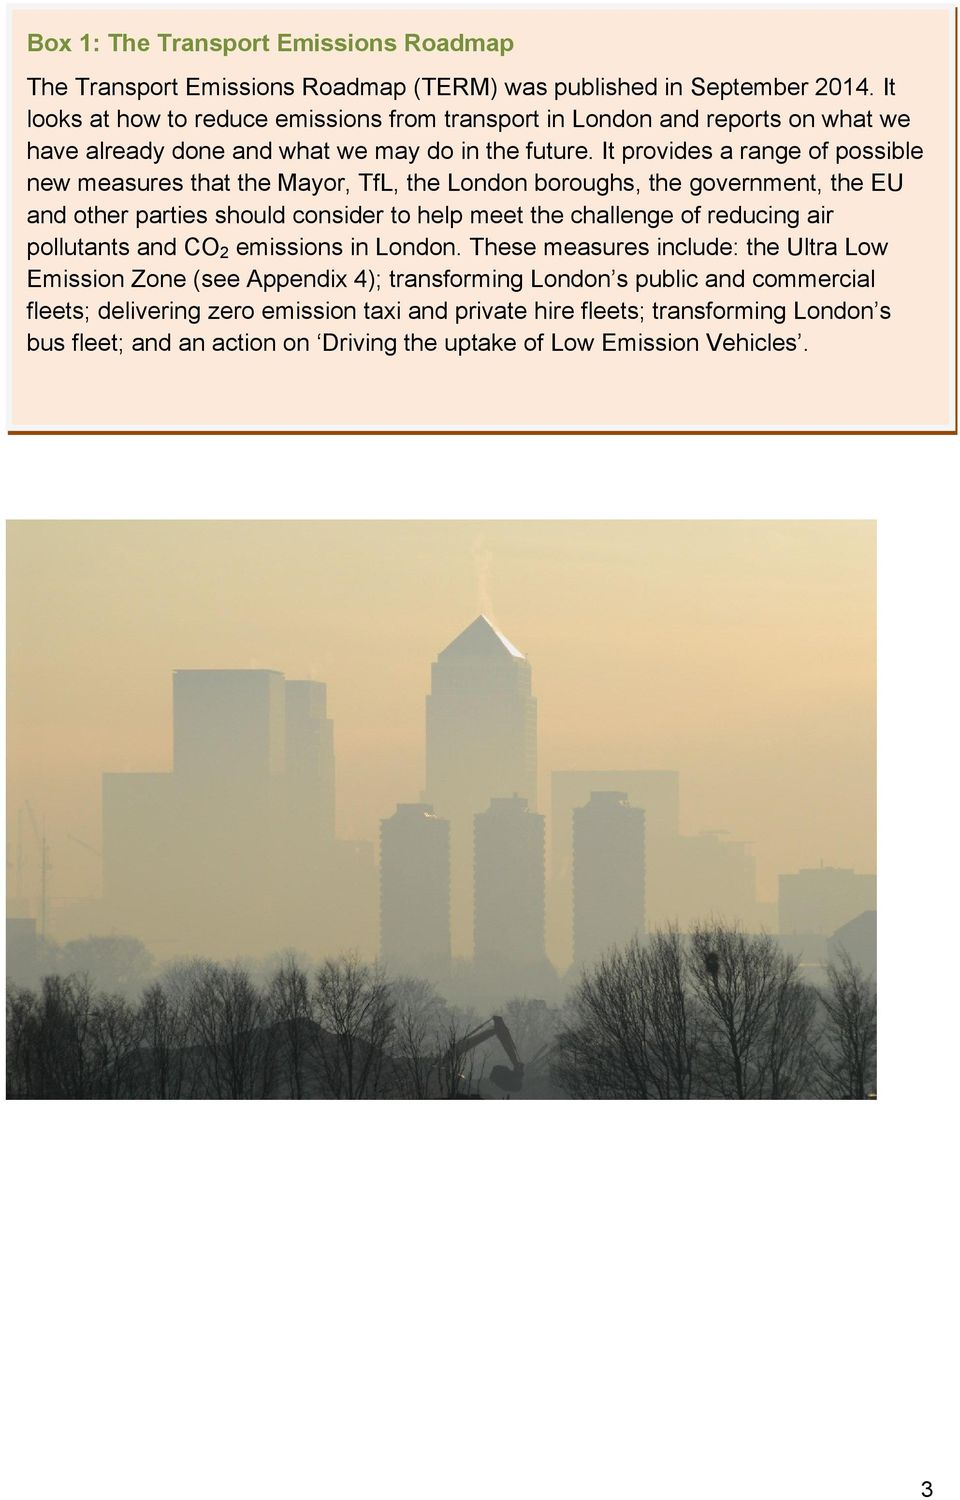 It provides a range of possible new measures that the Mayor, TfL, the London boroughs, the government, the EU and other parties should consider to help meet the challenge of reducing air